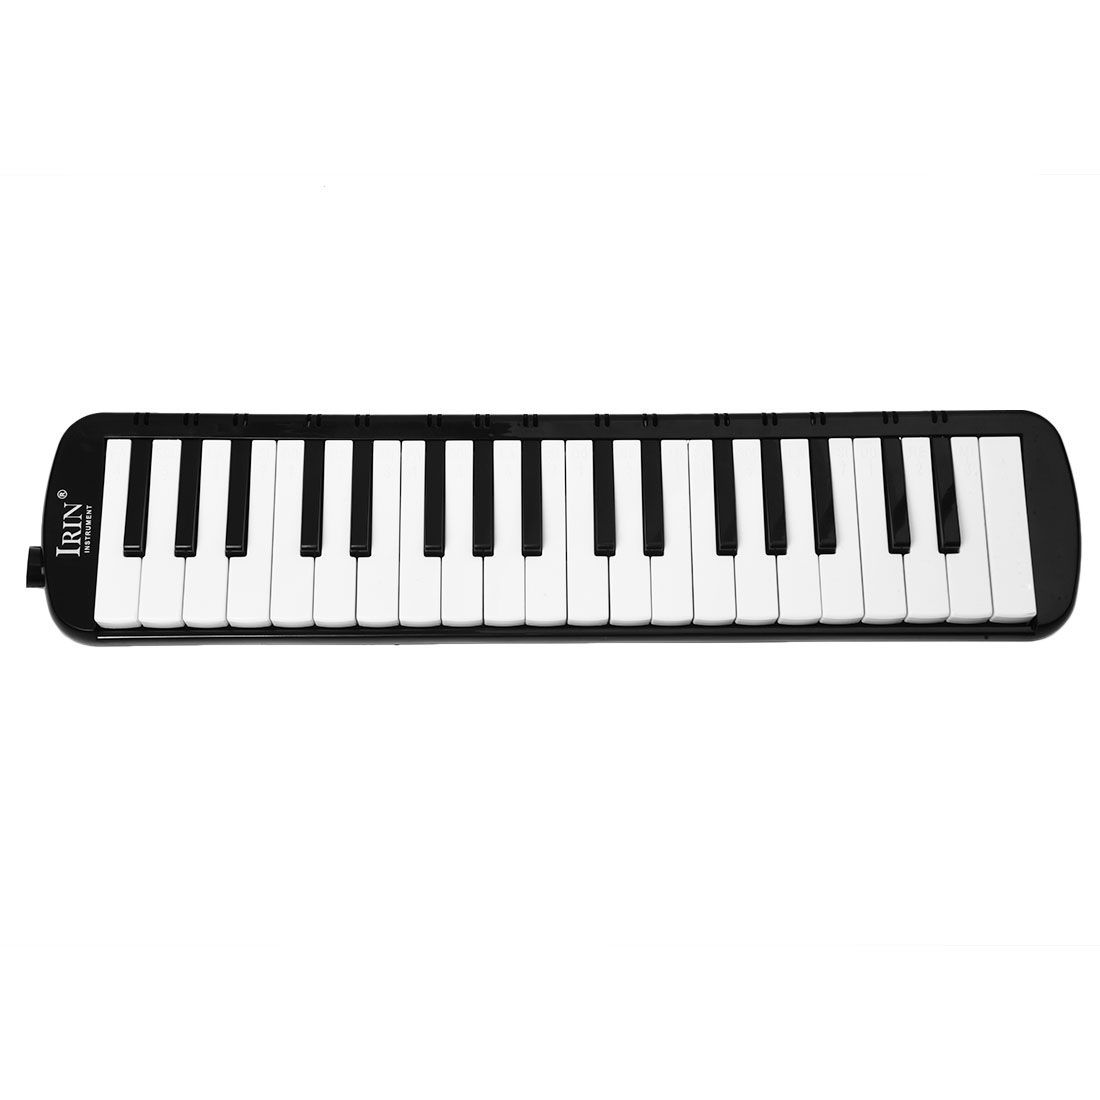 IRIN Black 37 Piano Keys Melodica Pianica w/Carrying Bag For Students New